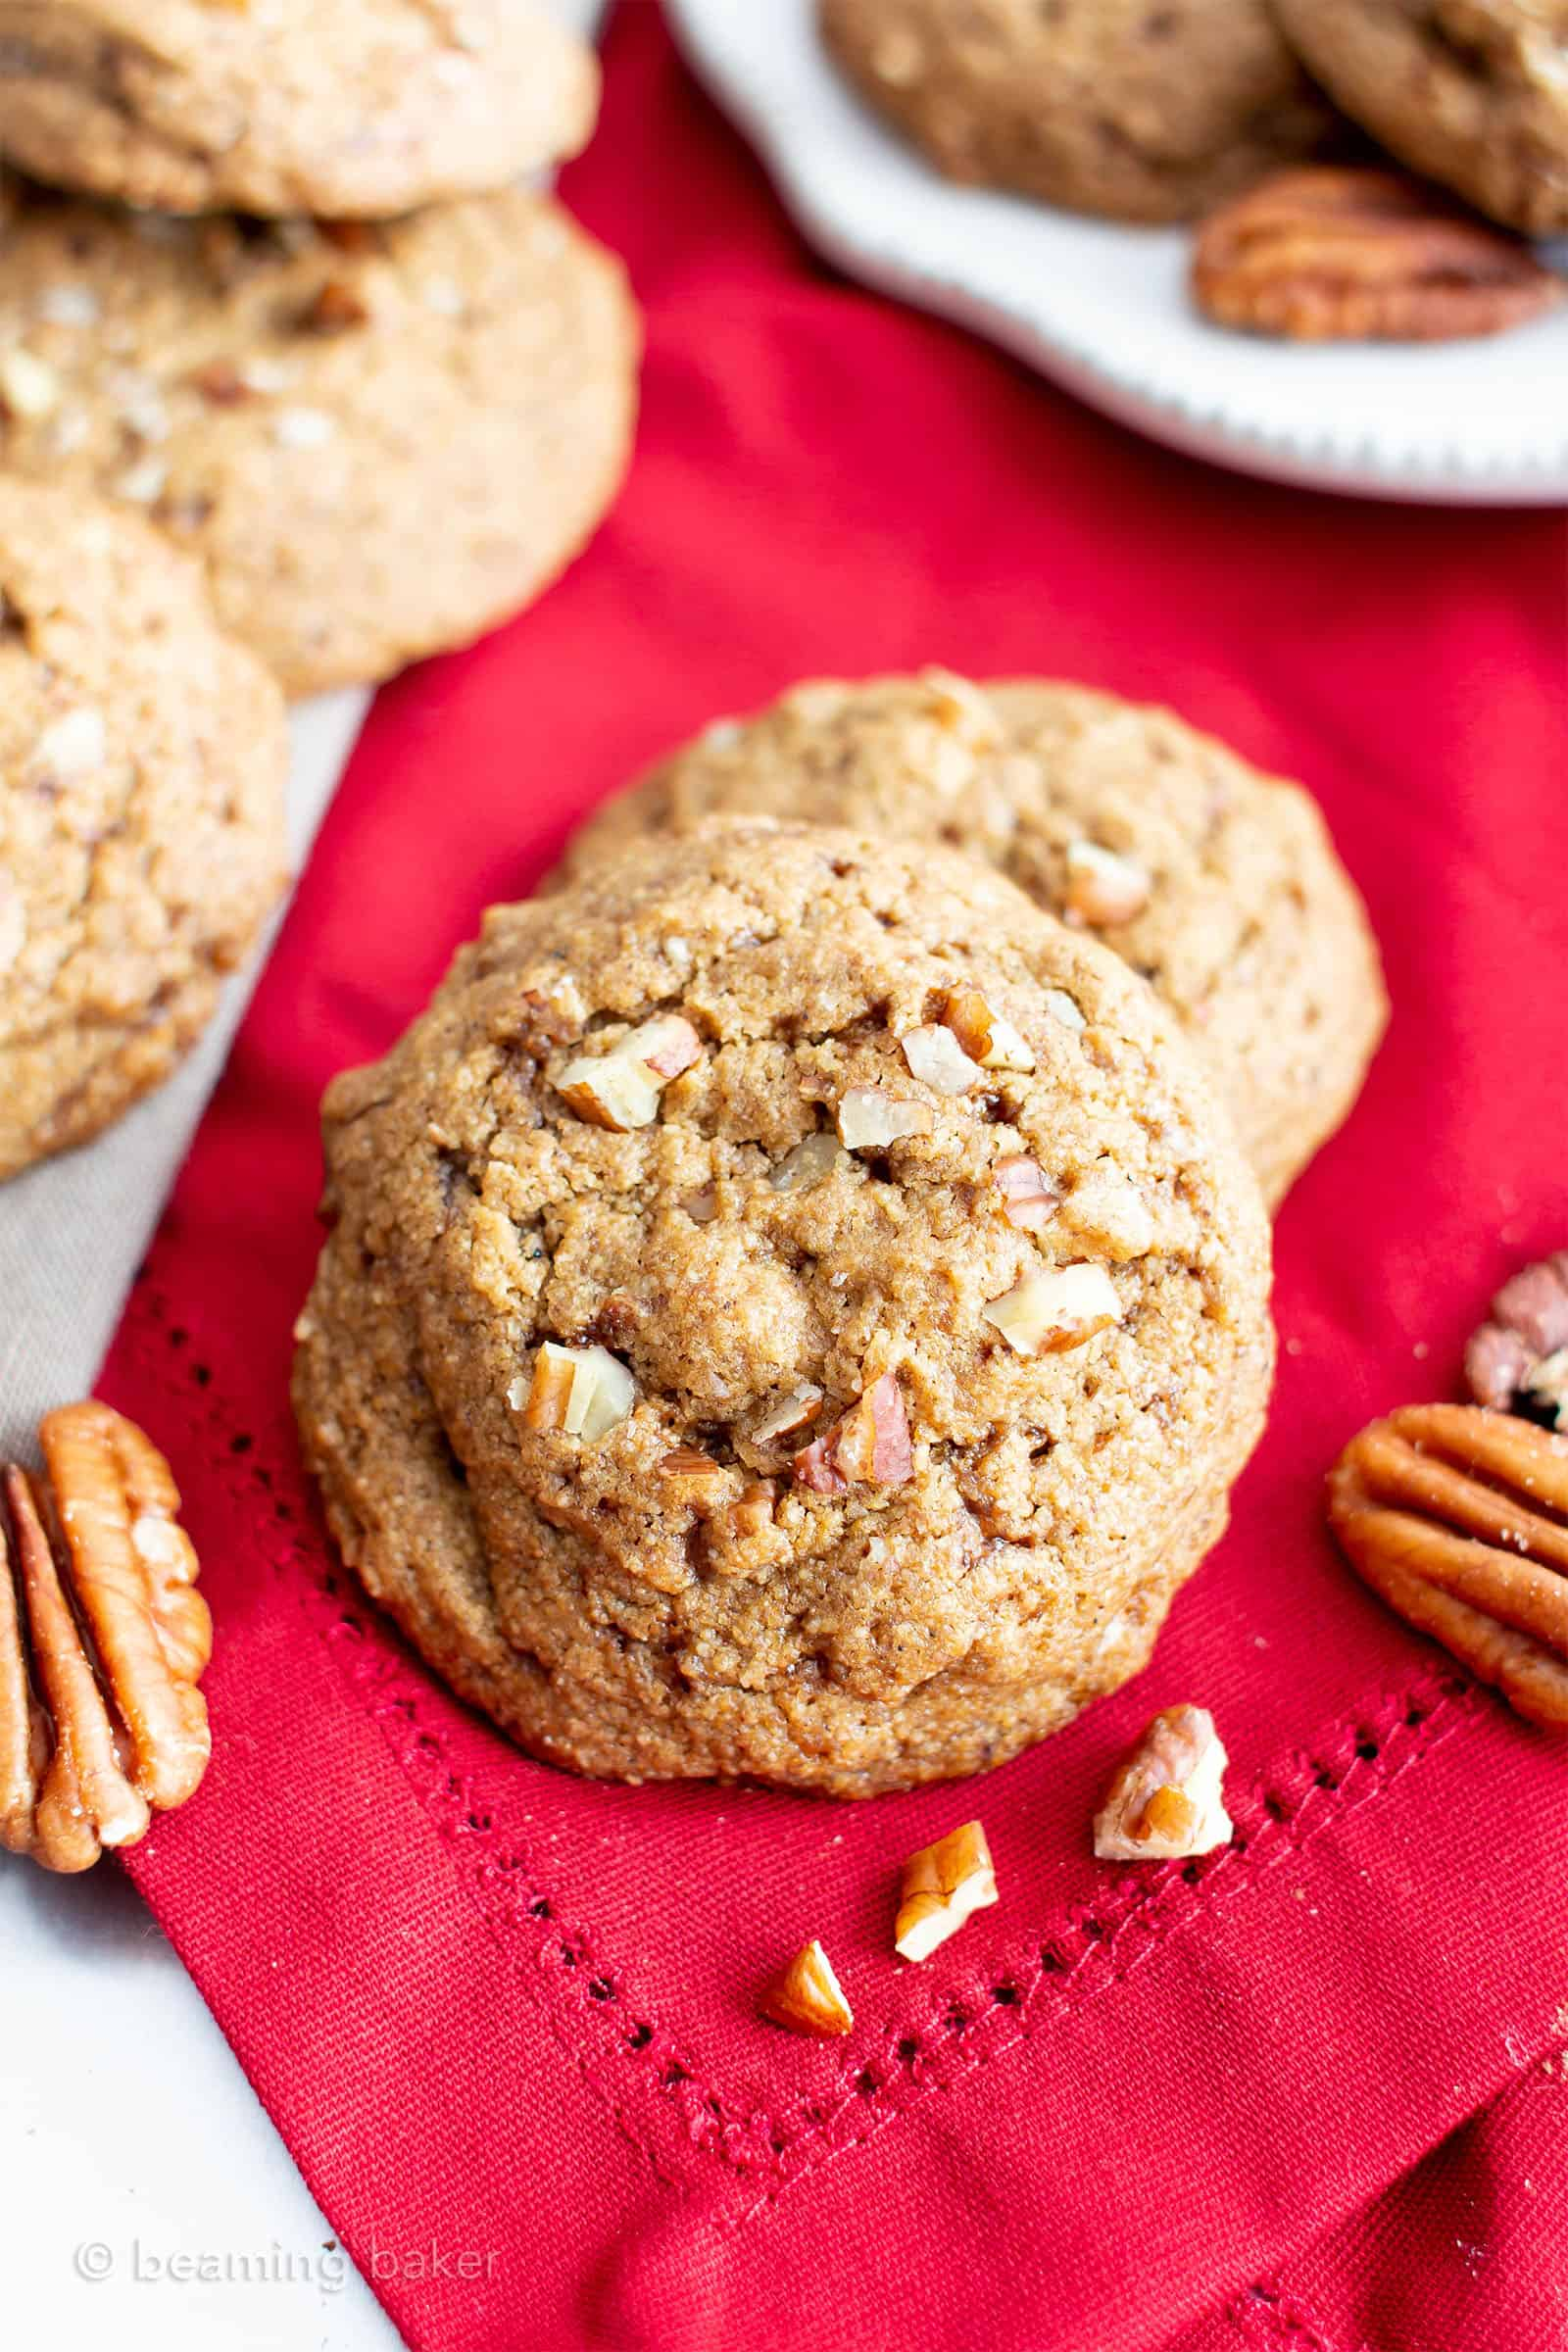 Easy Vegan Cinnamon Pecan Cookies (V, GF): an easy recipe for chewy on the outside, soft on the inside buttery gluten free pecan cookies bursting with pecan crunch and a cinnamon kick! Made with healthy ingredients. #Cookies #BeamingBaker #Vegan #GlutenFree #GlutenFreeCookies #Christmas #HealthyBaking #VeganCookies | Recipe at BeamingBaker.com